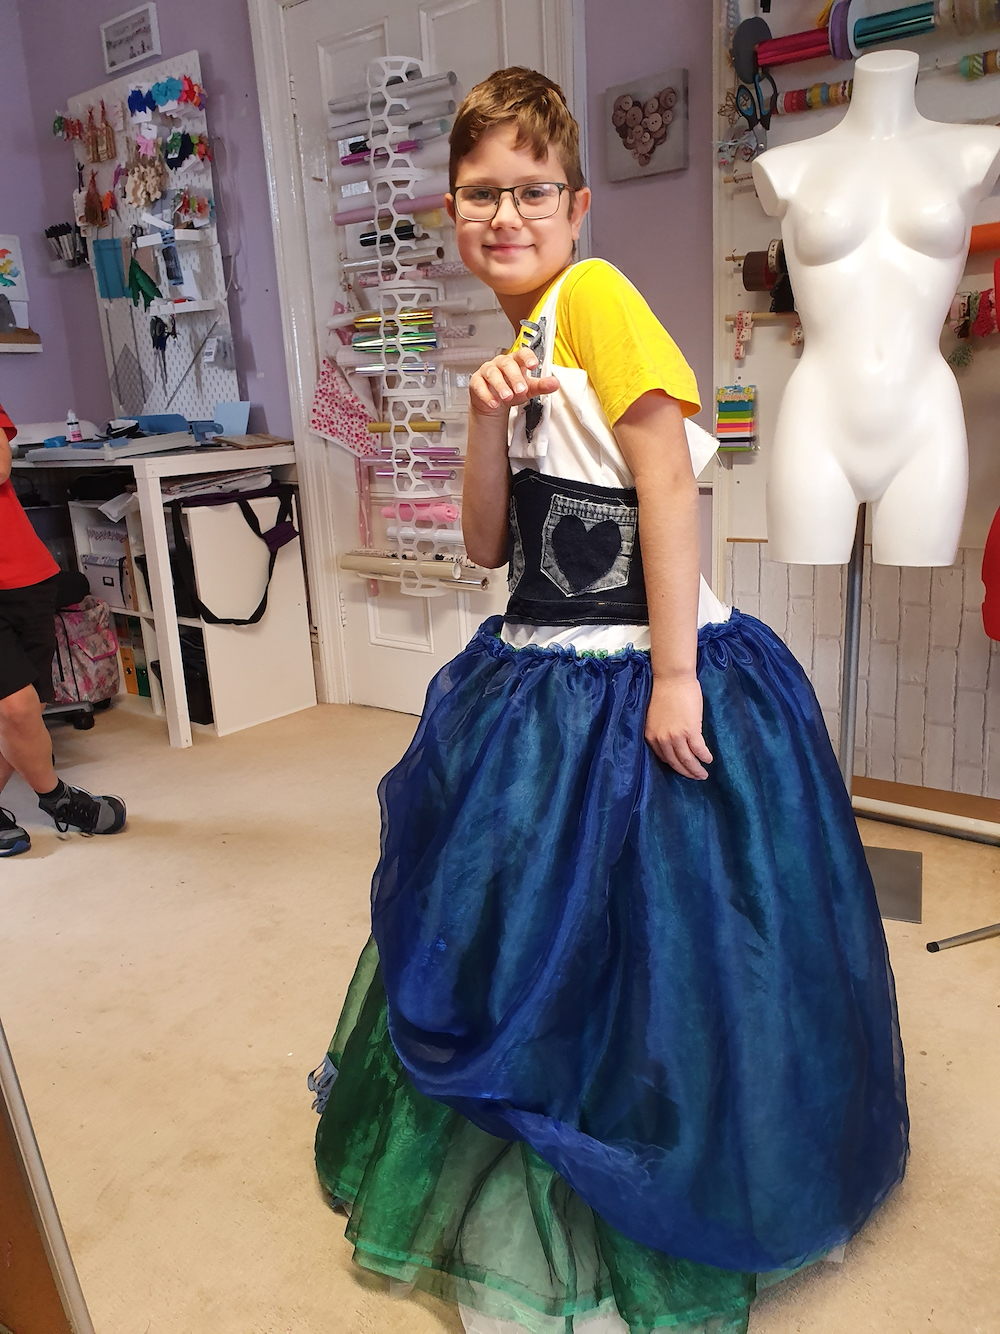 Having fun with Psyche's dress! A boy playfully models the dress